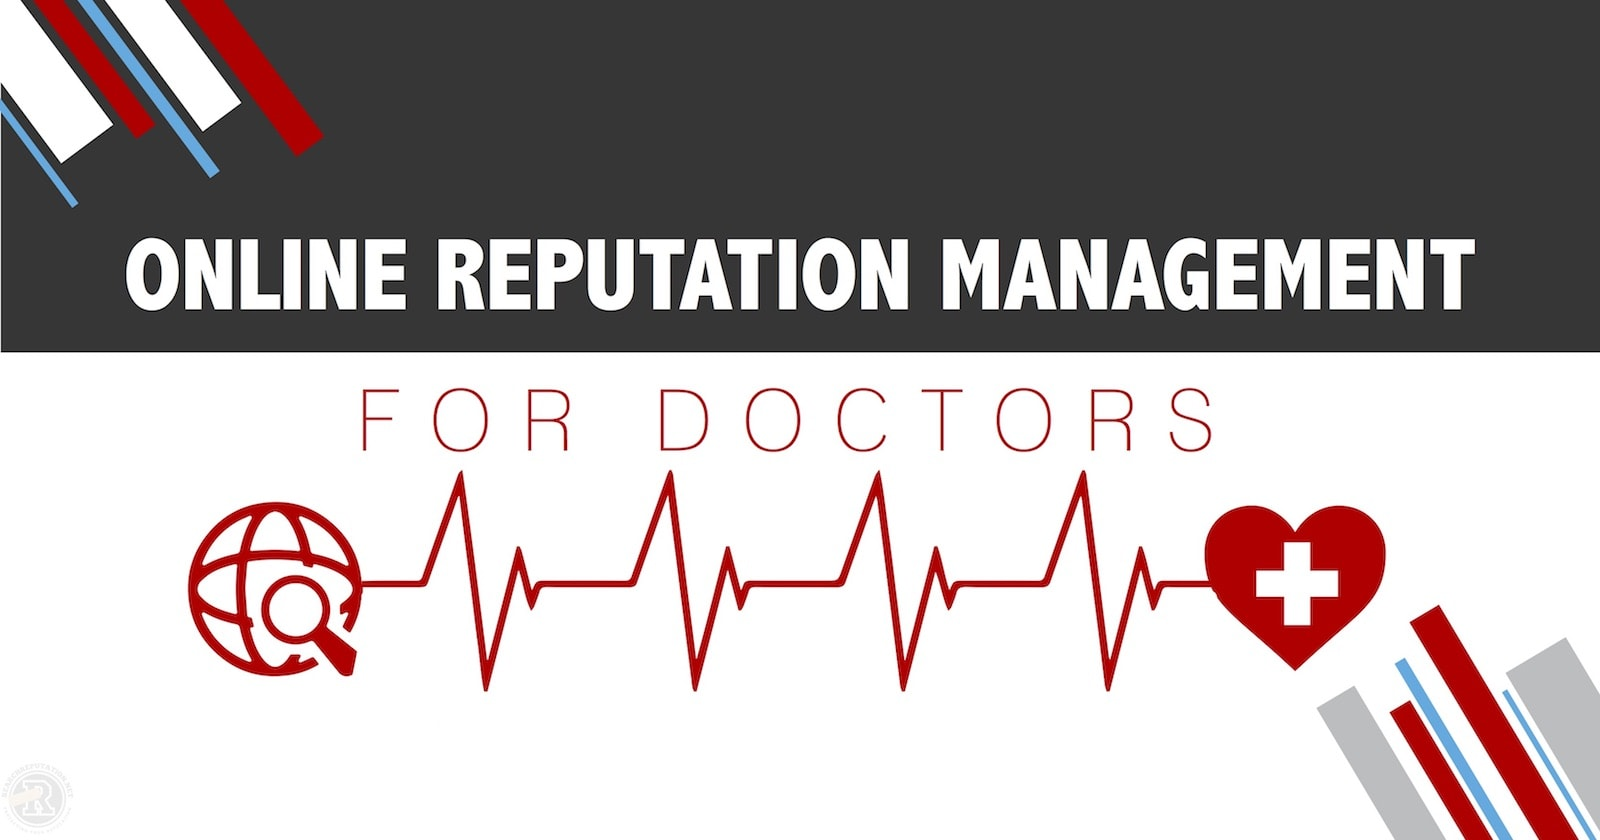 https://www.searchenginejournal.com/online-reputation-management-for-doctors/254961/